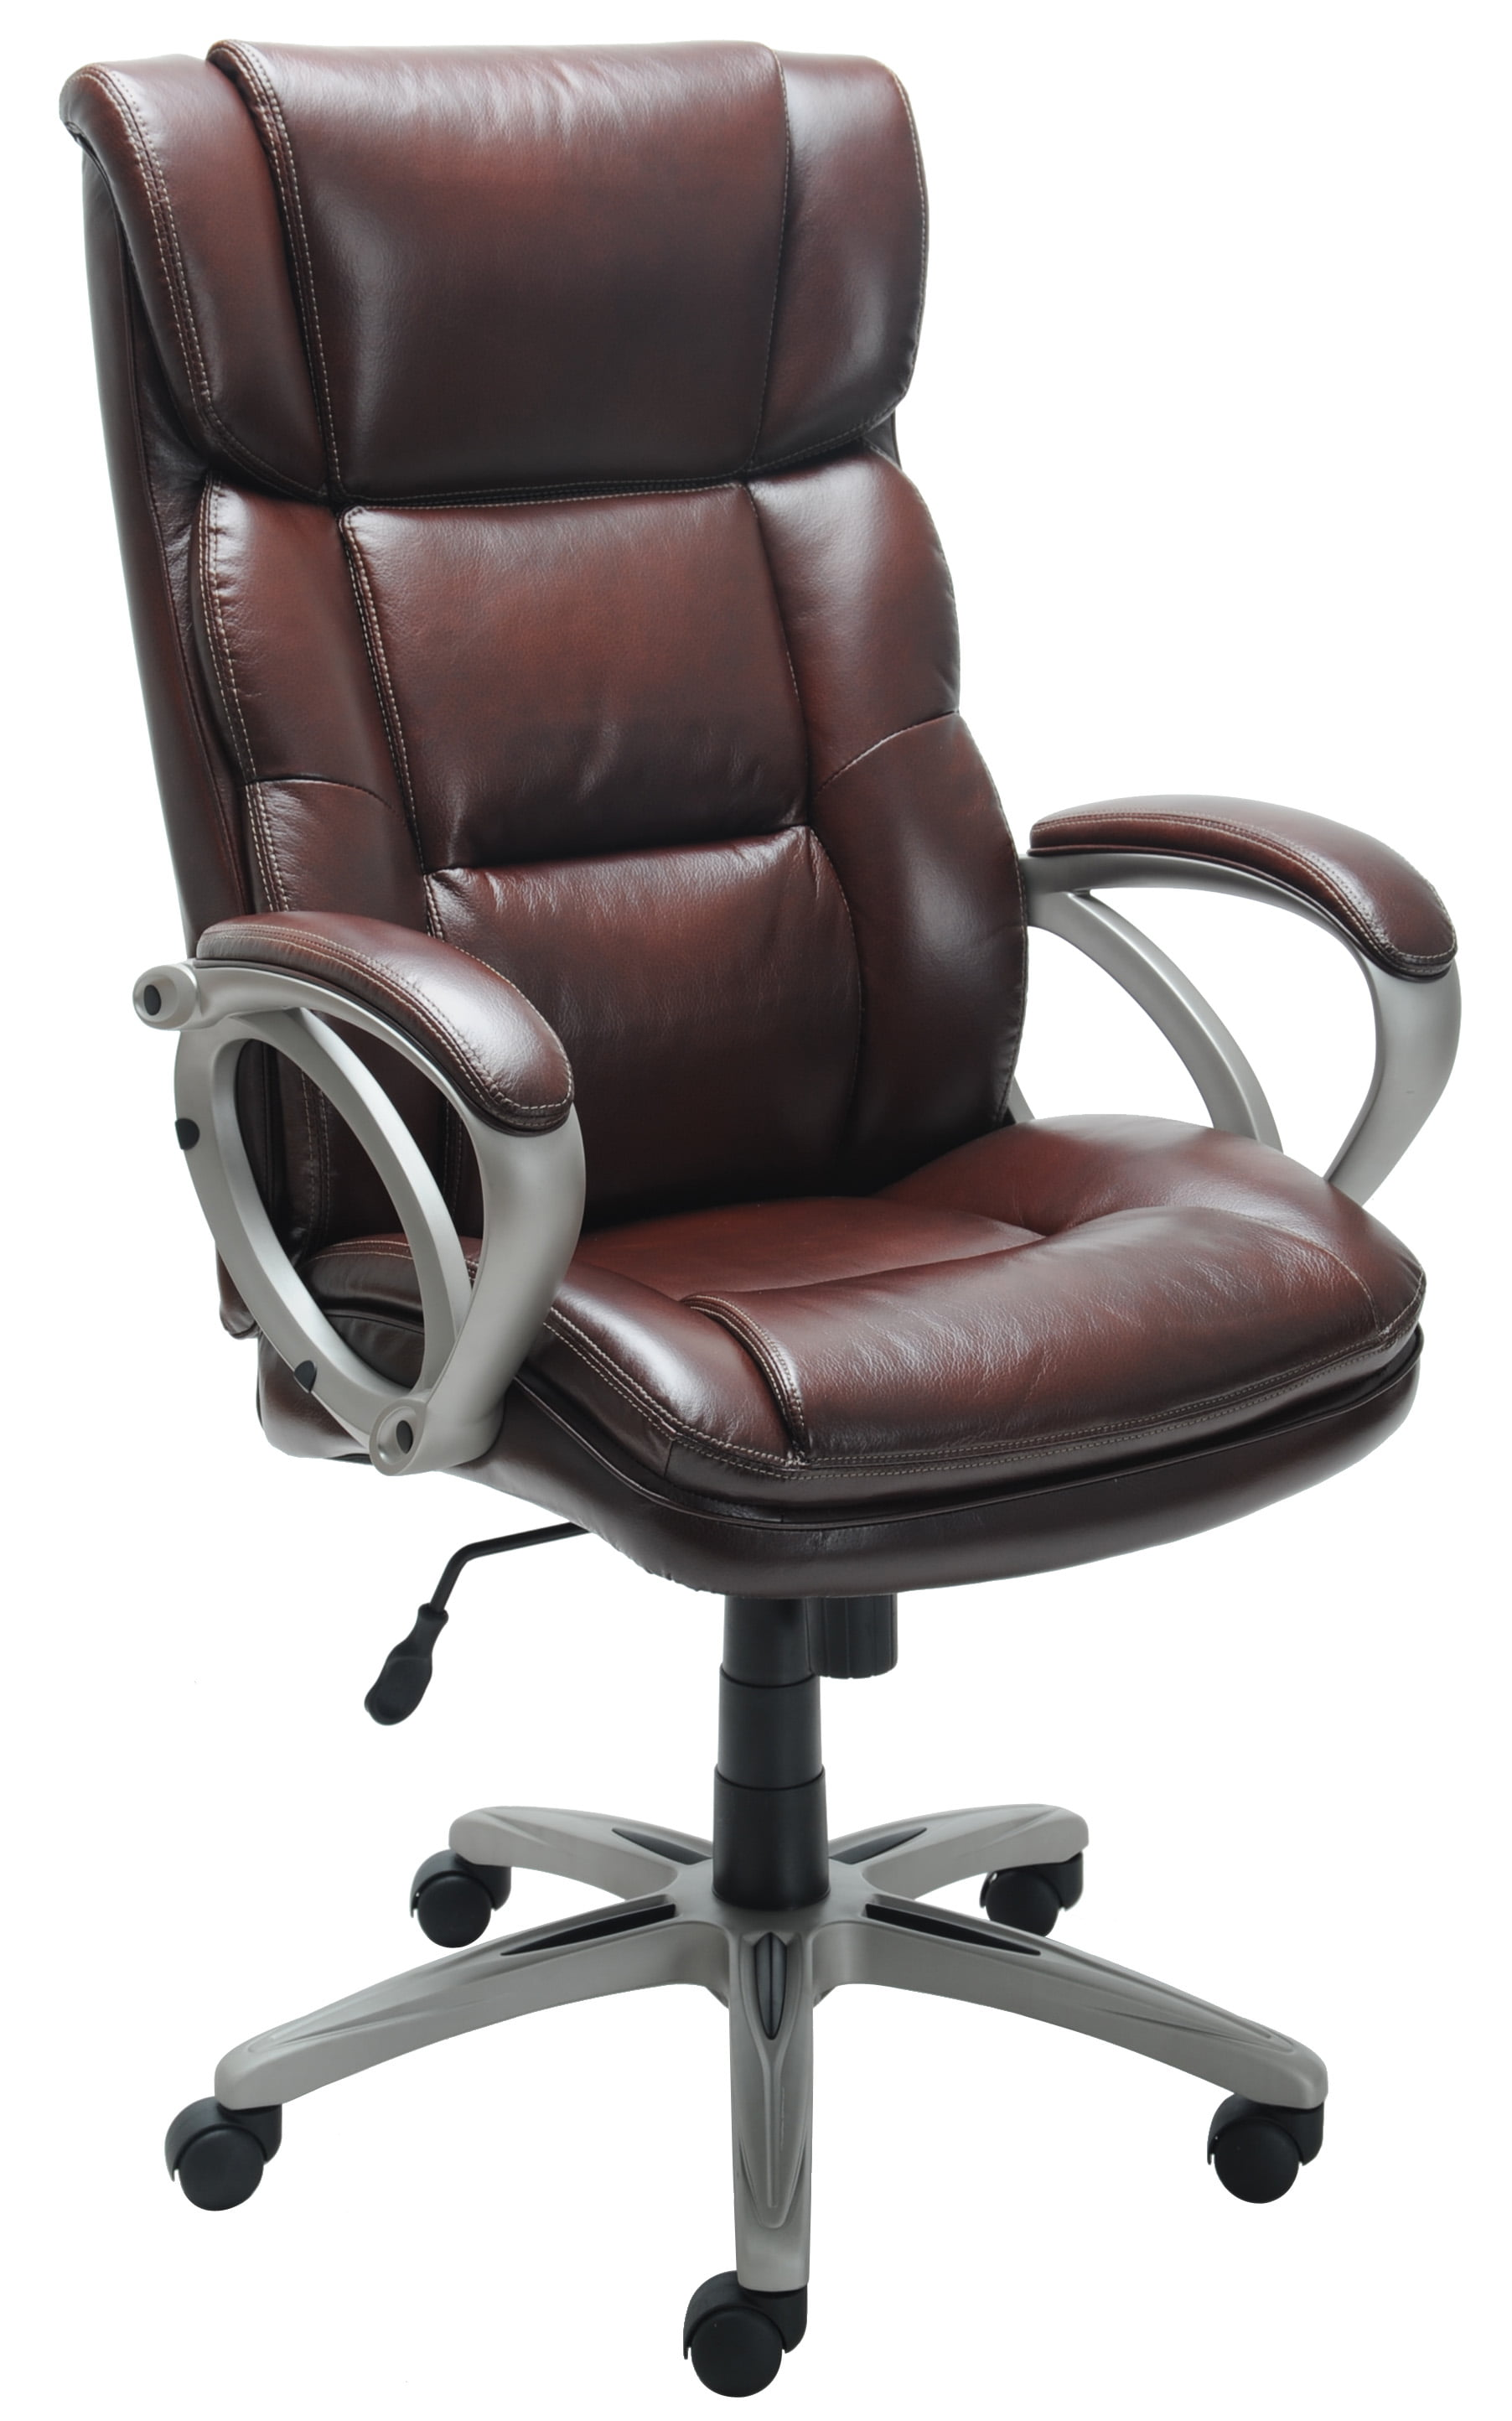 Costway PU Leather Executive Bucket Seat Racing Style fice Chair